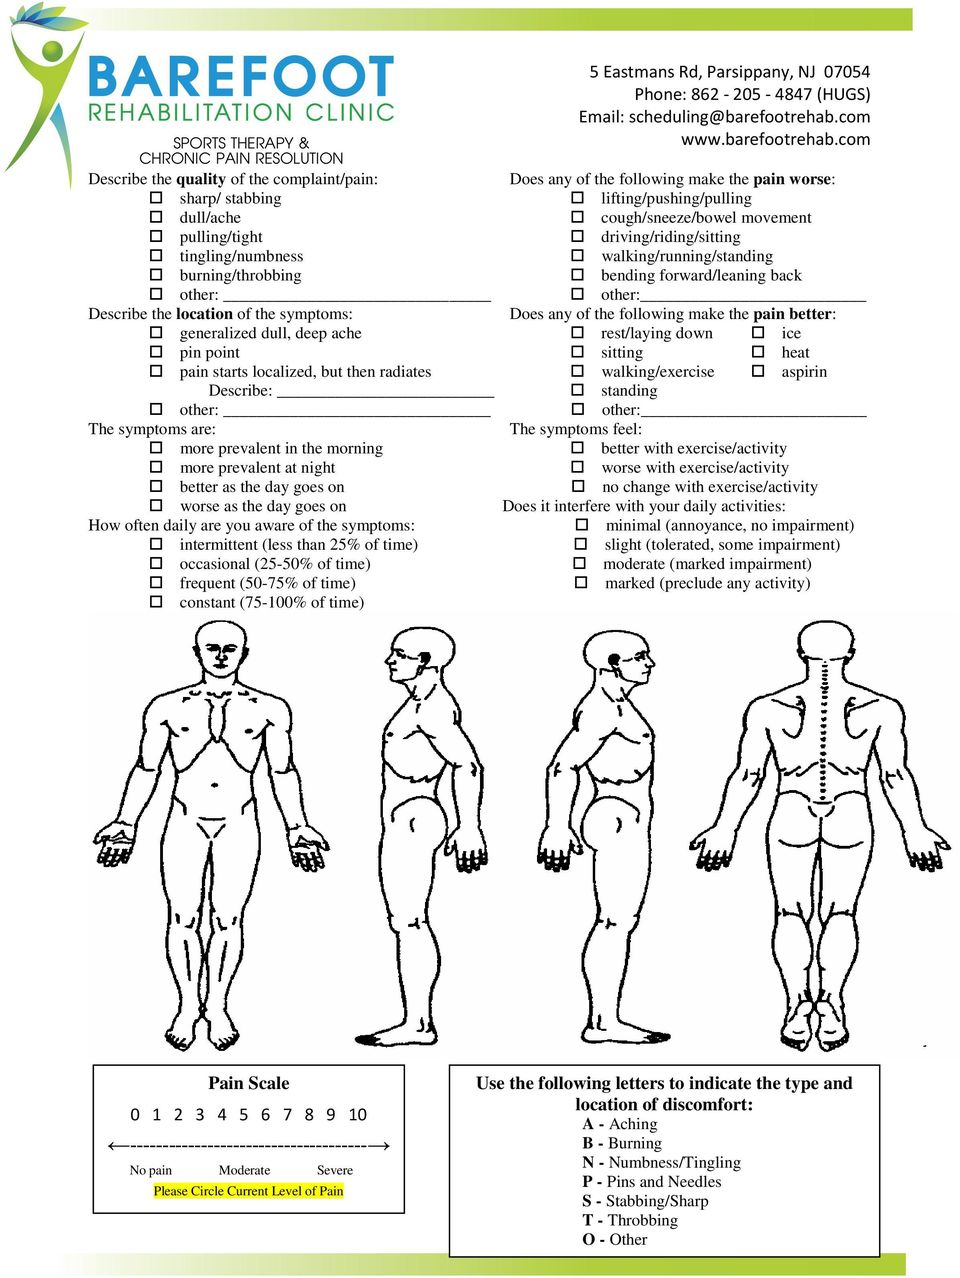 the pain better: generalized dull, deep ache rest/laying down ice pin point sitting heat pain starts localized, but then radiates walking/exercise aspirin Describe: standing other: other: The